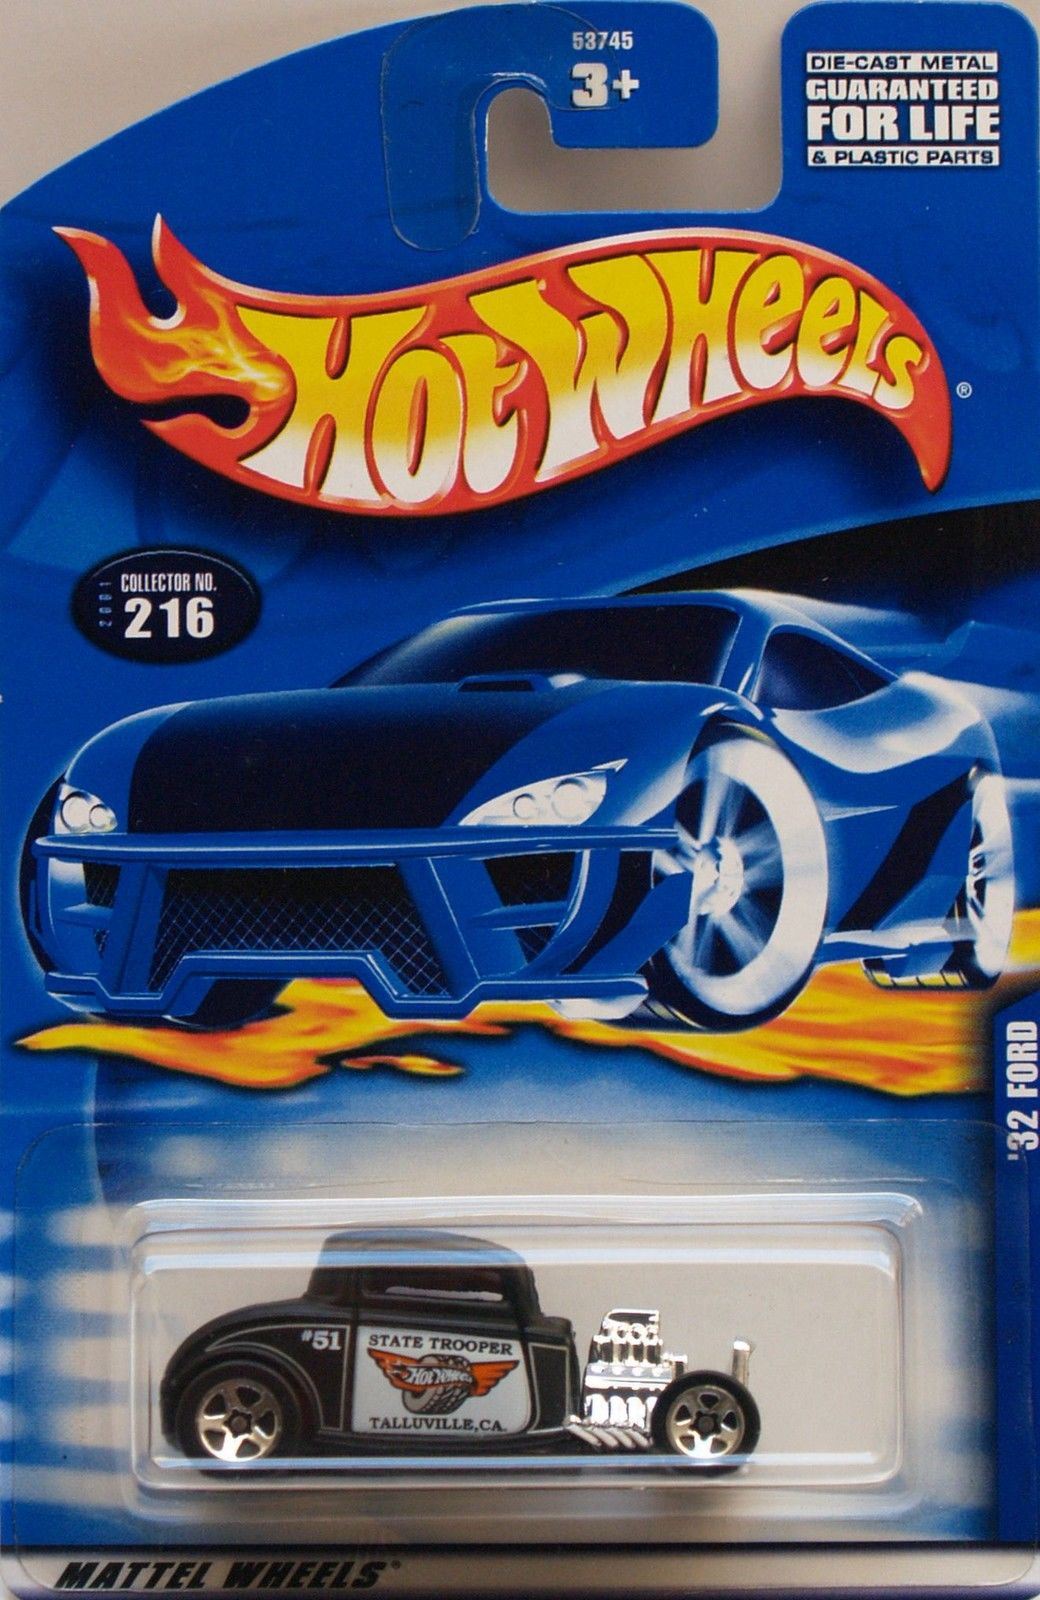 HOT WHEELS 2001 #51 STATE TROOPER '32 FORD #216